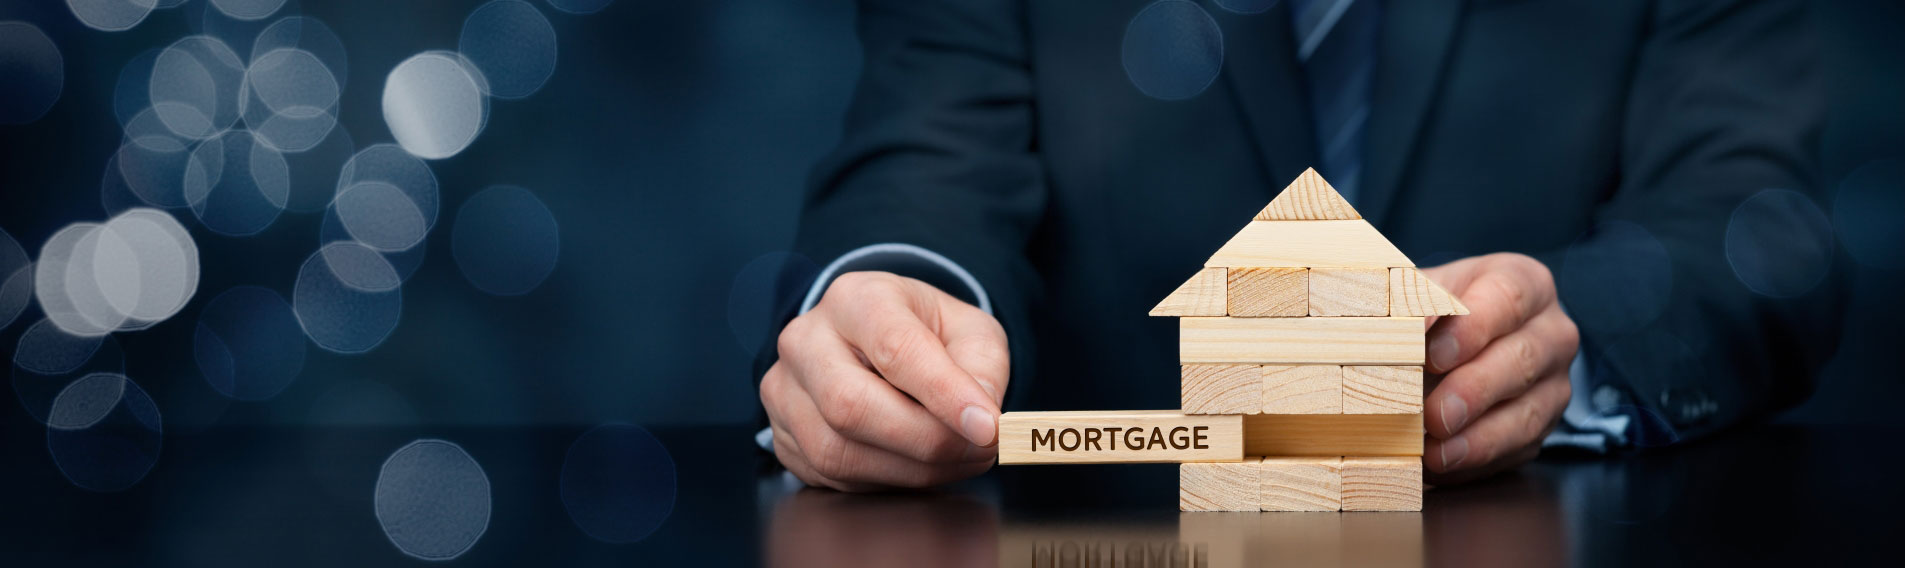 Mortgage Industry Services